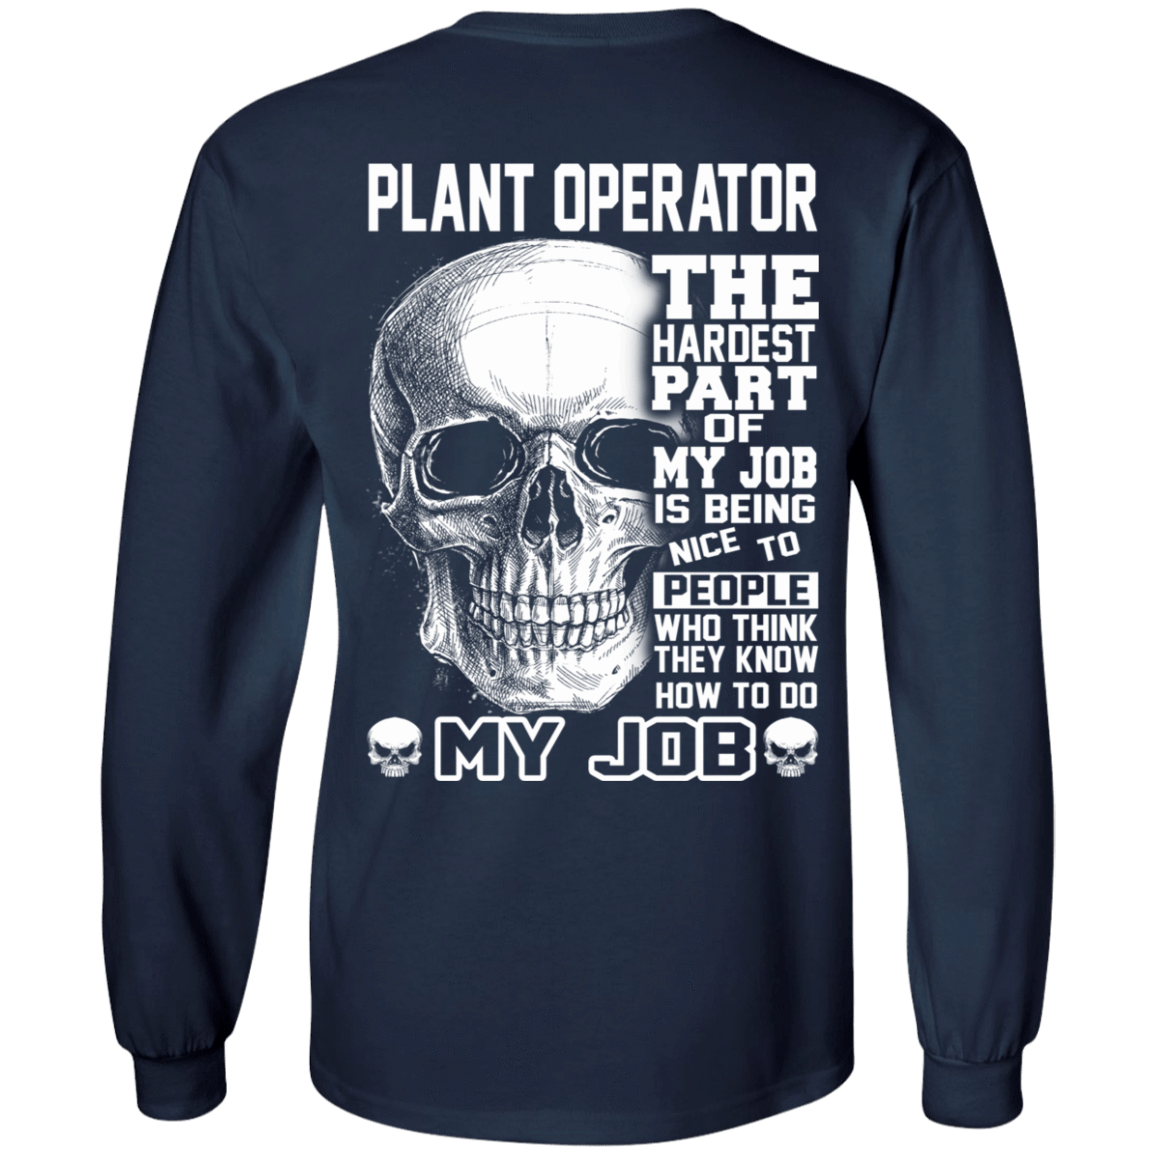 Plant Operator The Hardest Part Of My Job 30-184-71609216-331 - Tee Ript